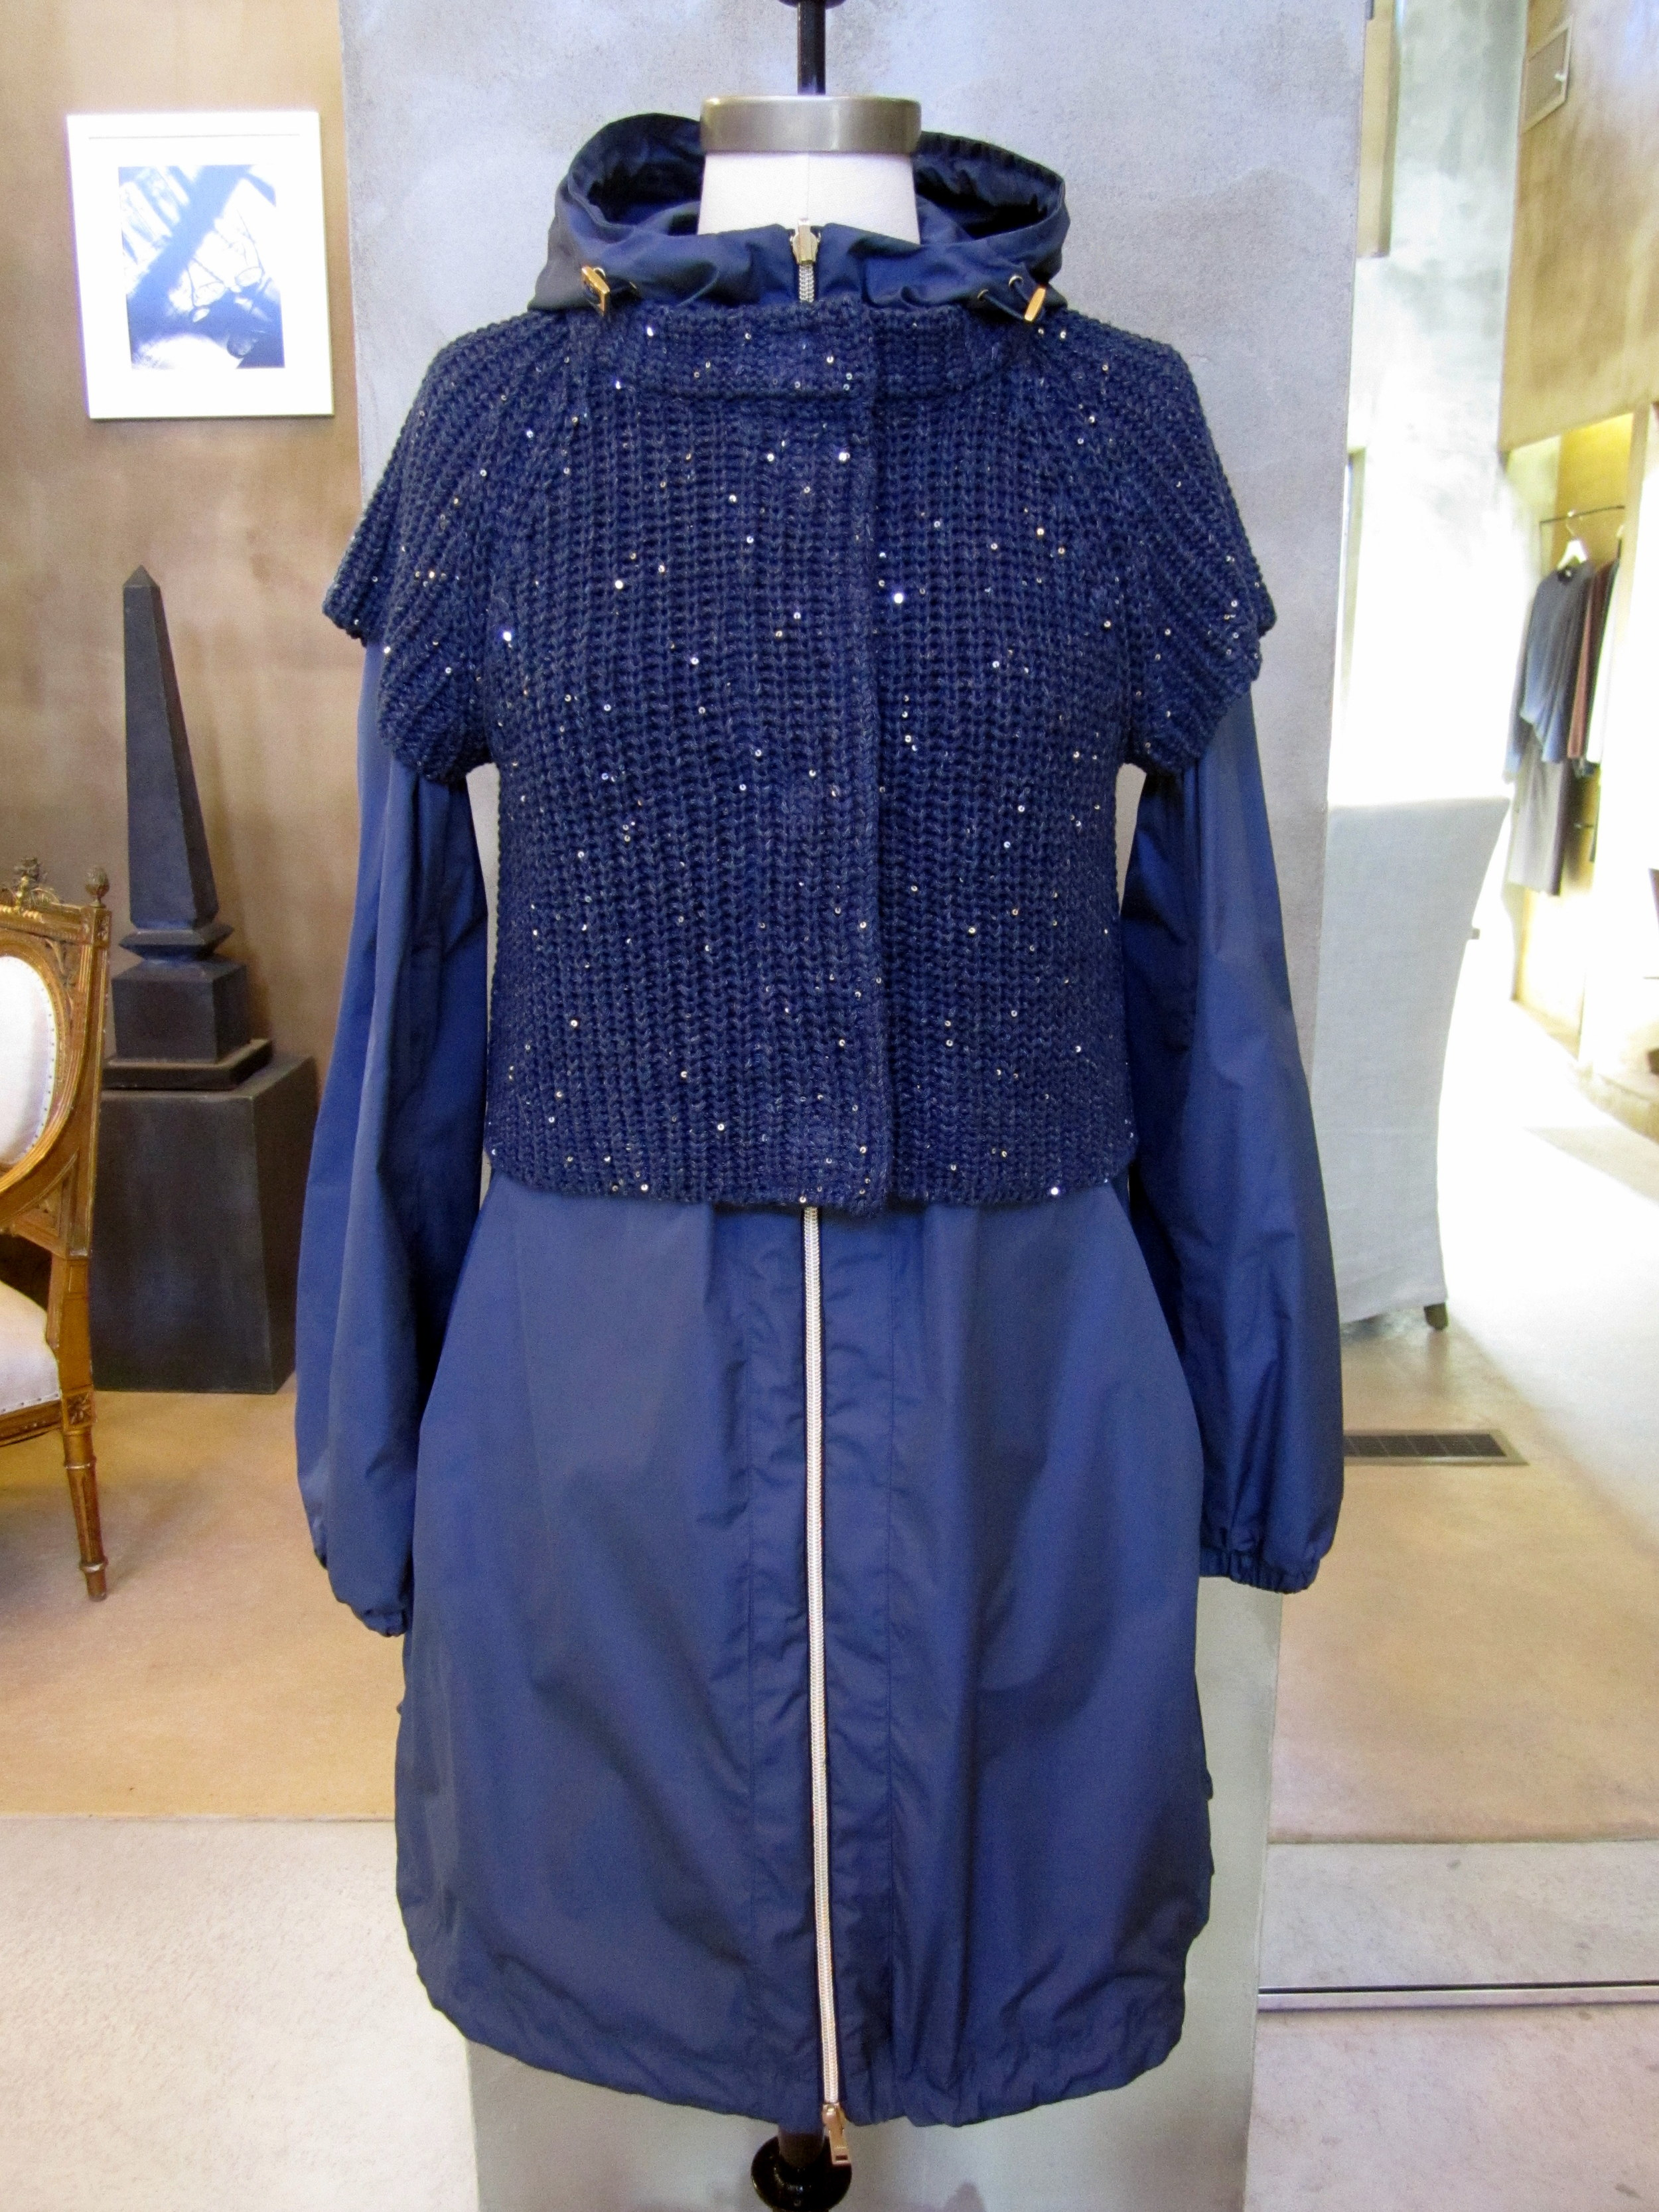 Herno Fine Fly Reversible Nylon Coat with Detachable Cotton / Linen Short Sleeve Pailetta Sweater. Blue. Made in Italy. $1410. SOLD.